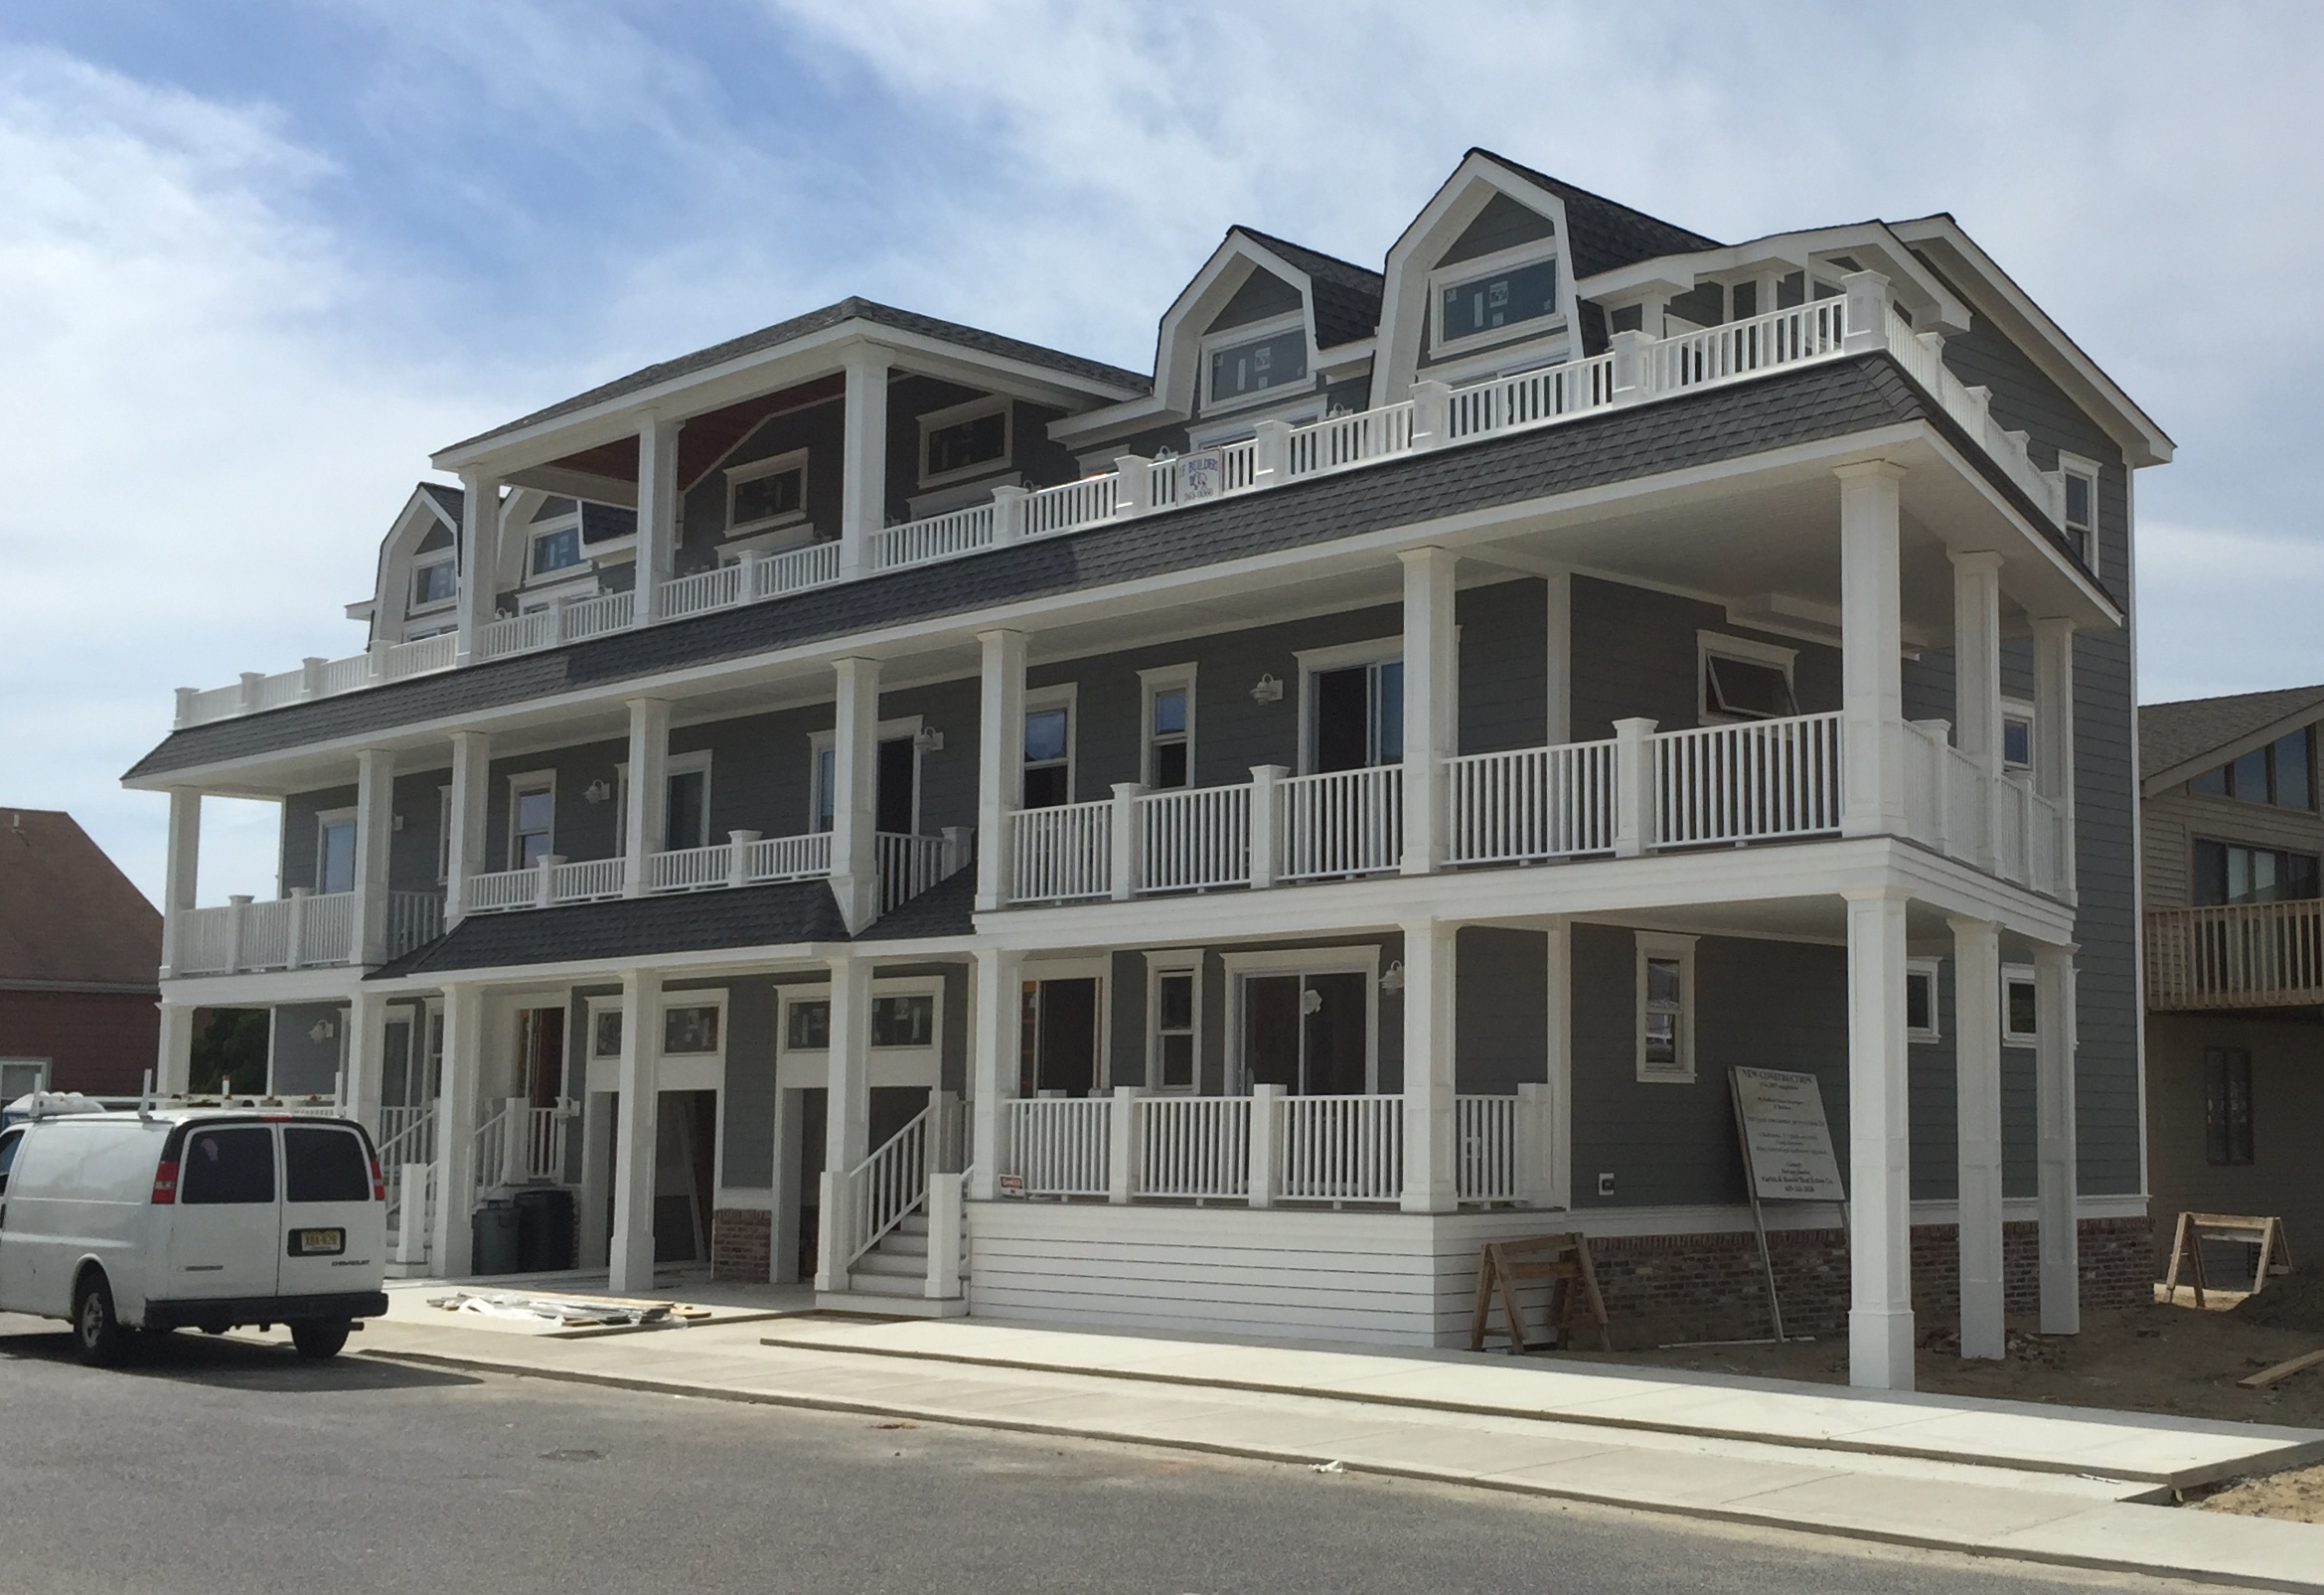 6400 Pleasure Ave., North, Sea Isle City, NJ